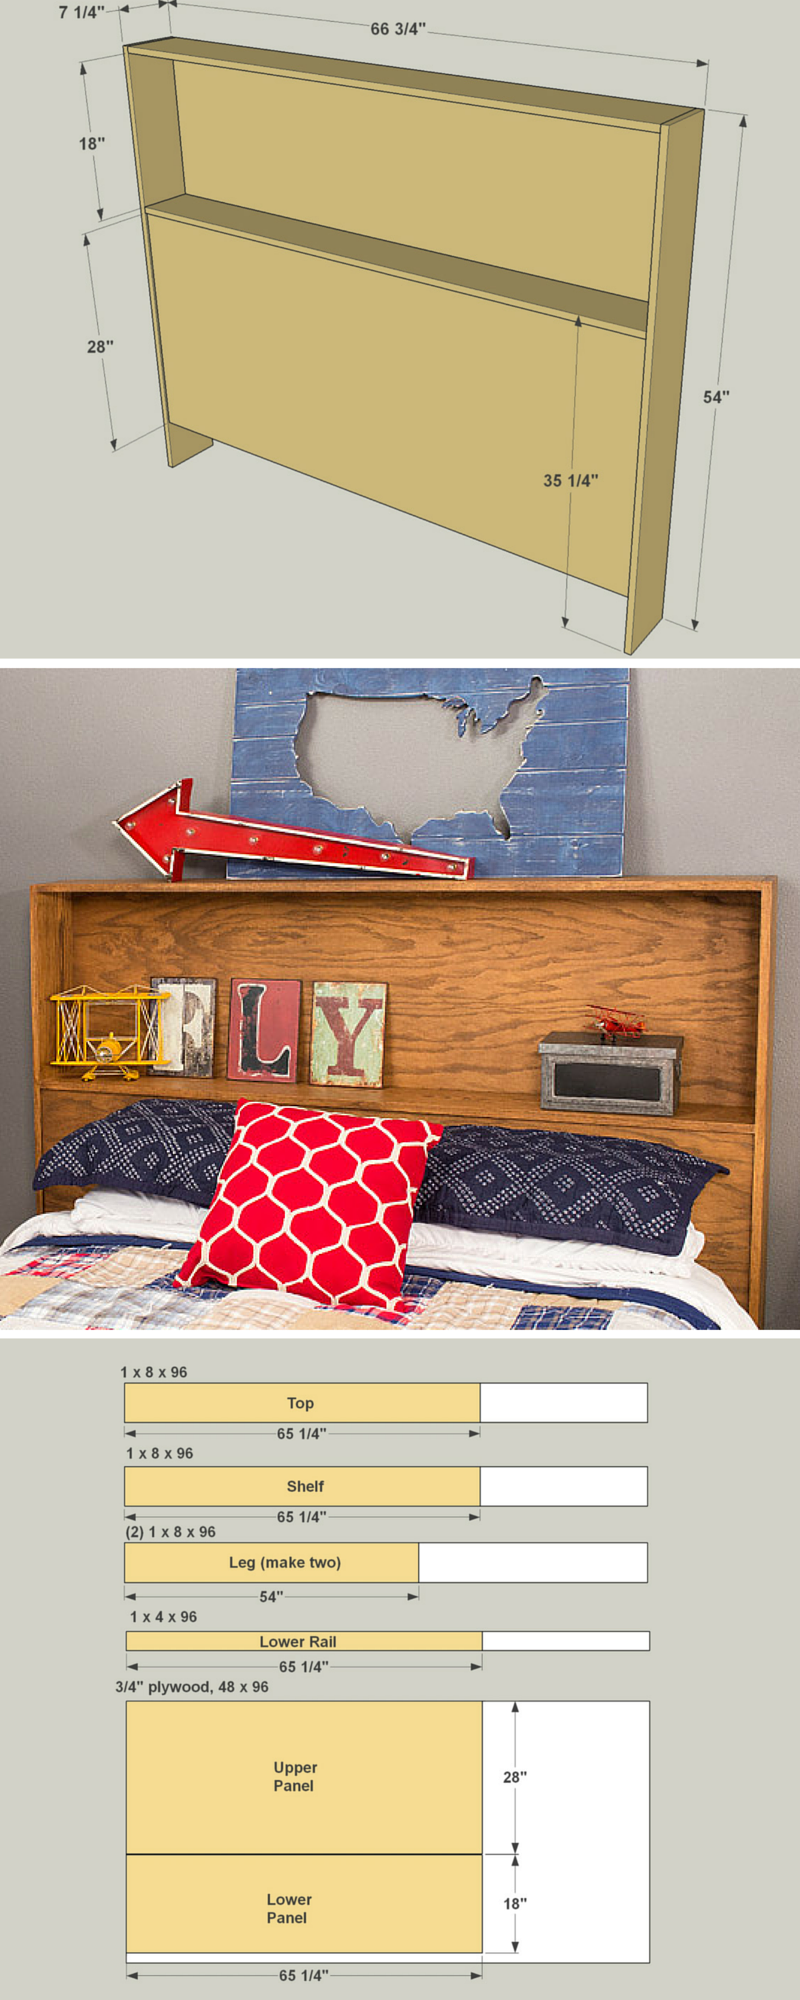 How to Build a DIY Storage Headboard Free Printable Project Plans